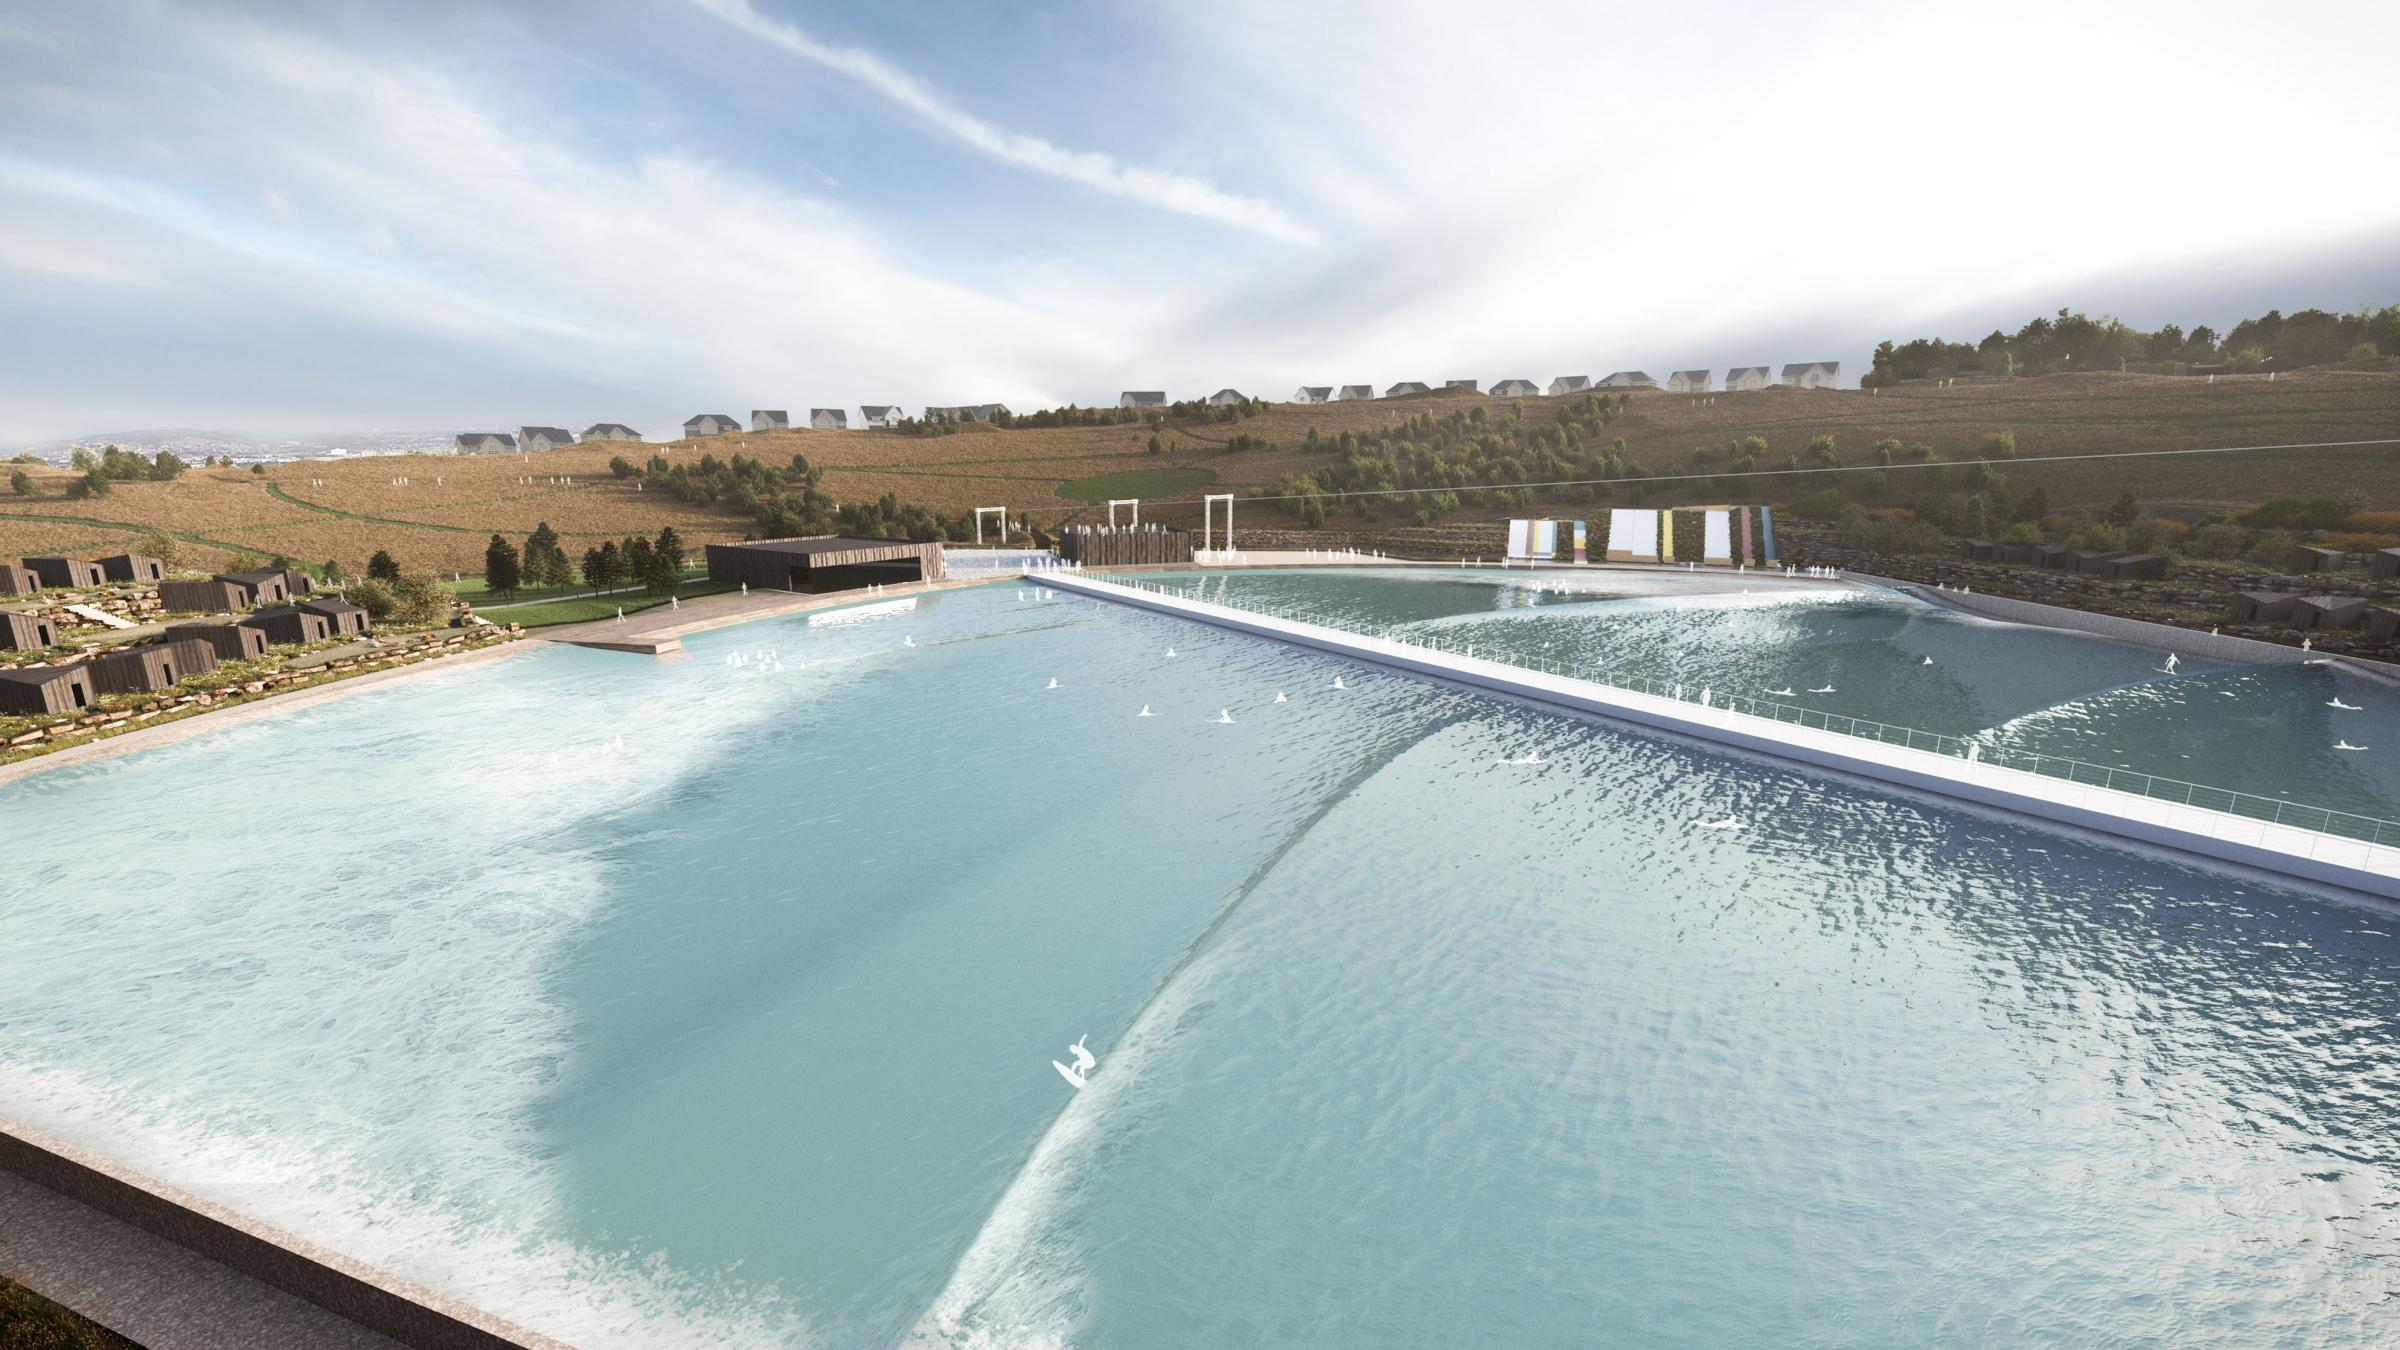 Surf's up! Plans for Scotland's first artificial surf park approved